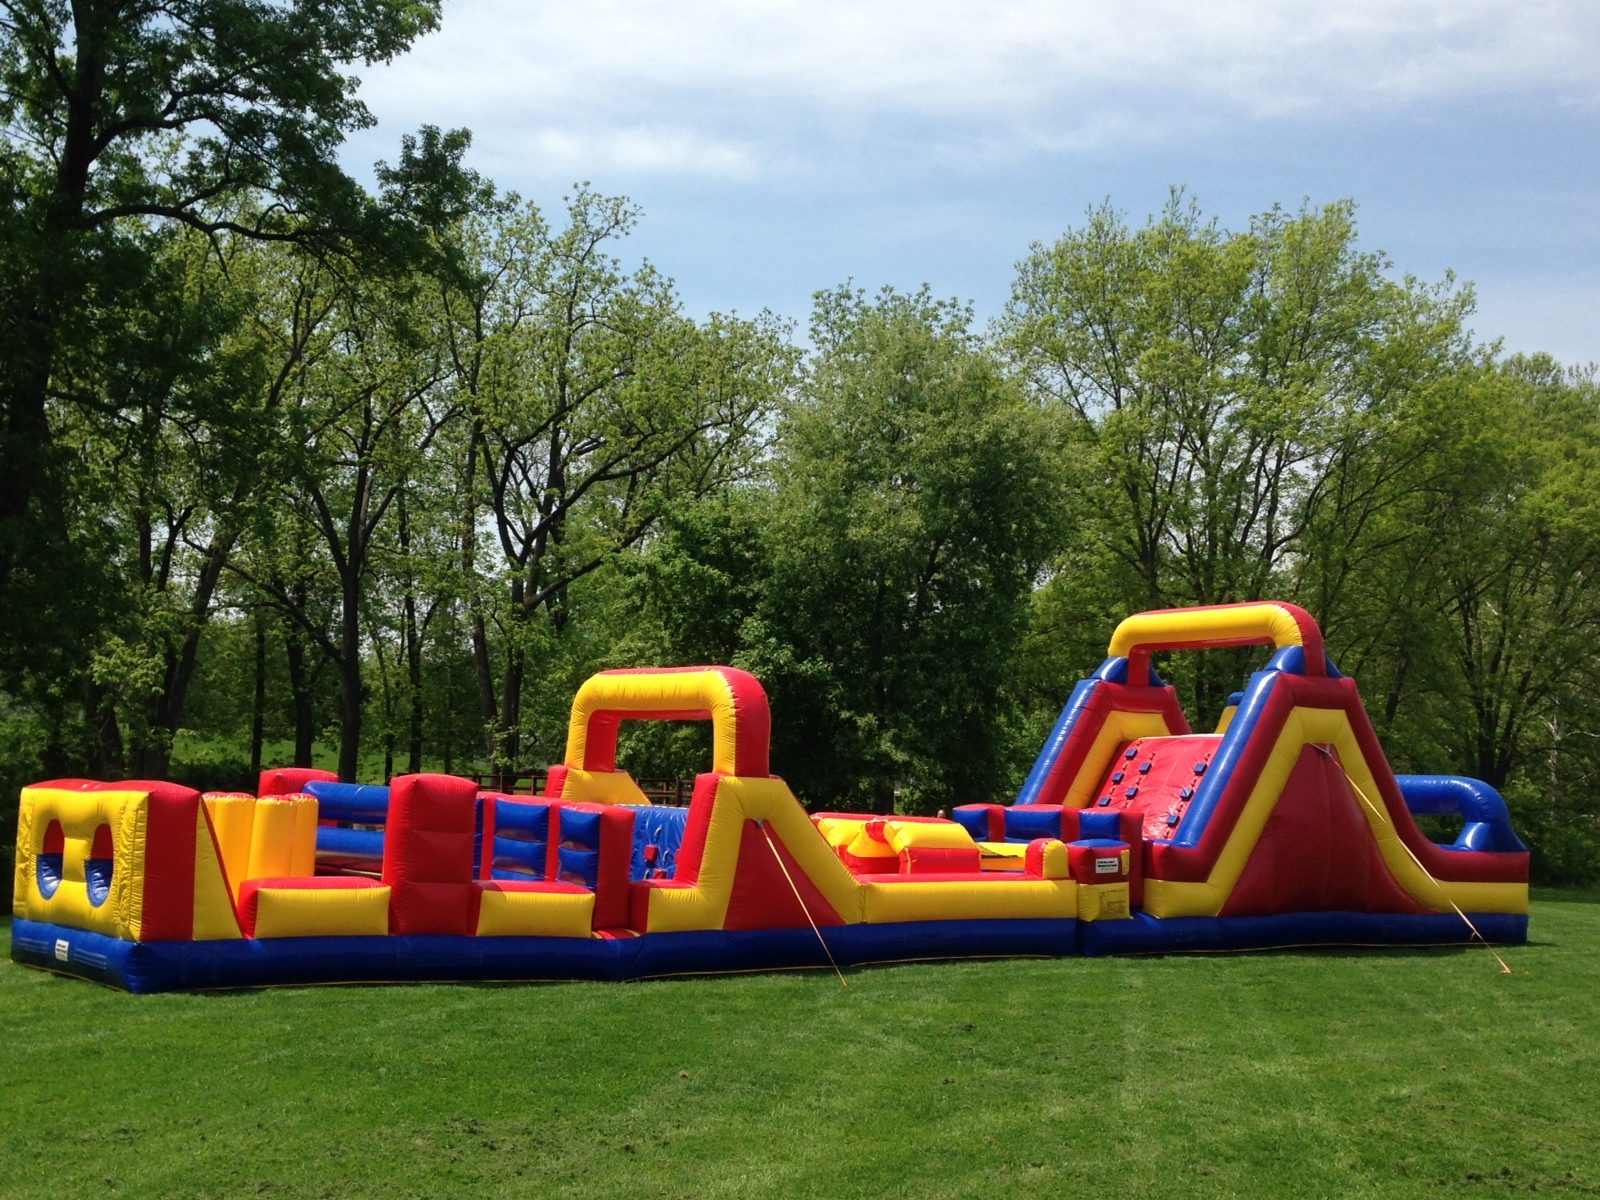 68' Extreme Obstacle Course Rentals Lancaster Pa